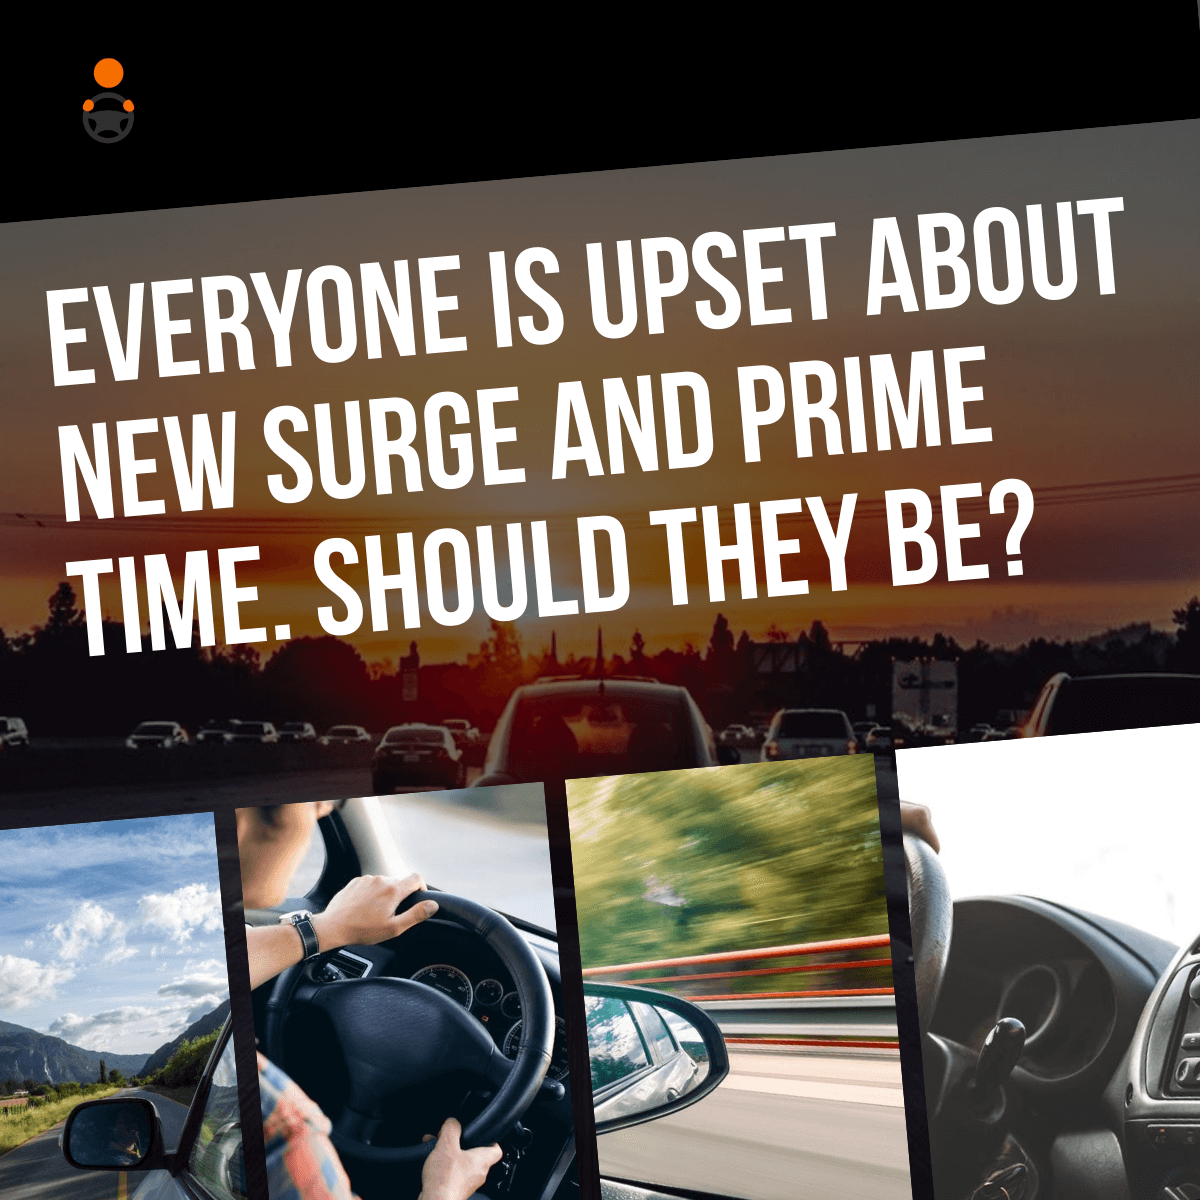 Recently, we featured a guest post from the perspective of a Chicago driver affected by Lyft's potential new changes to Prime Time. A lot of of drivers understandably have many questions about Lyft's new Prime Time, plus Uber's changes for new surge. Senior RSG contributor Christian Perea tackles those questions, and how new surge/Prime Time may affect drivers -